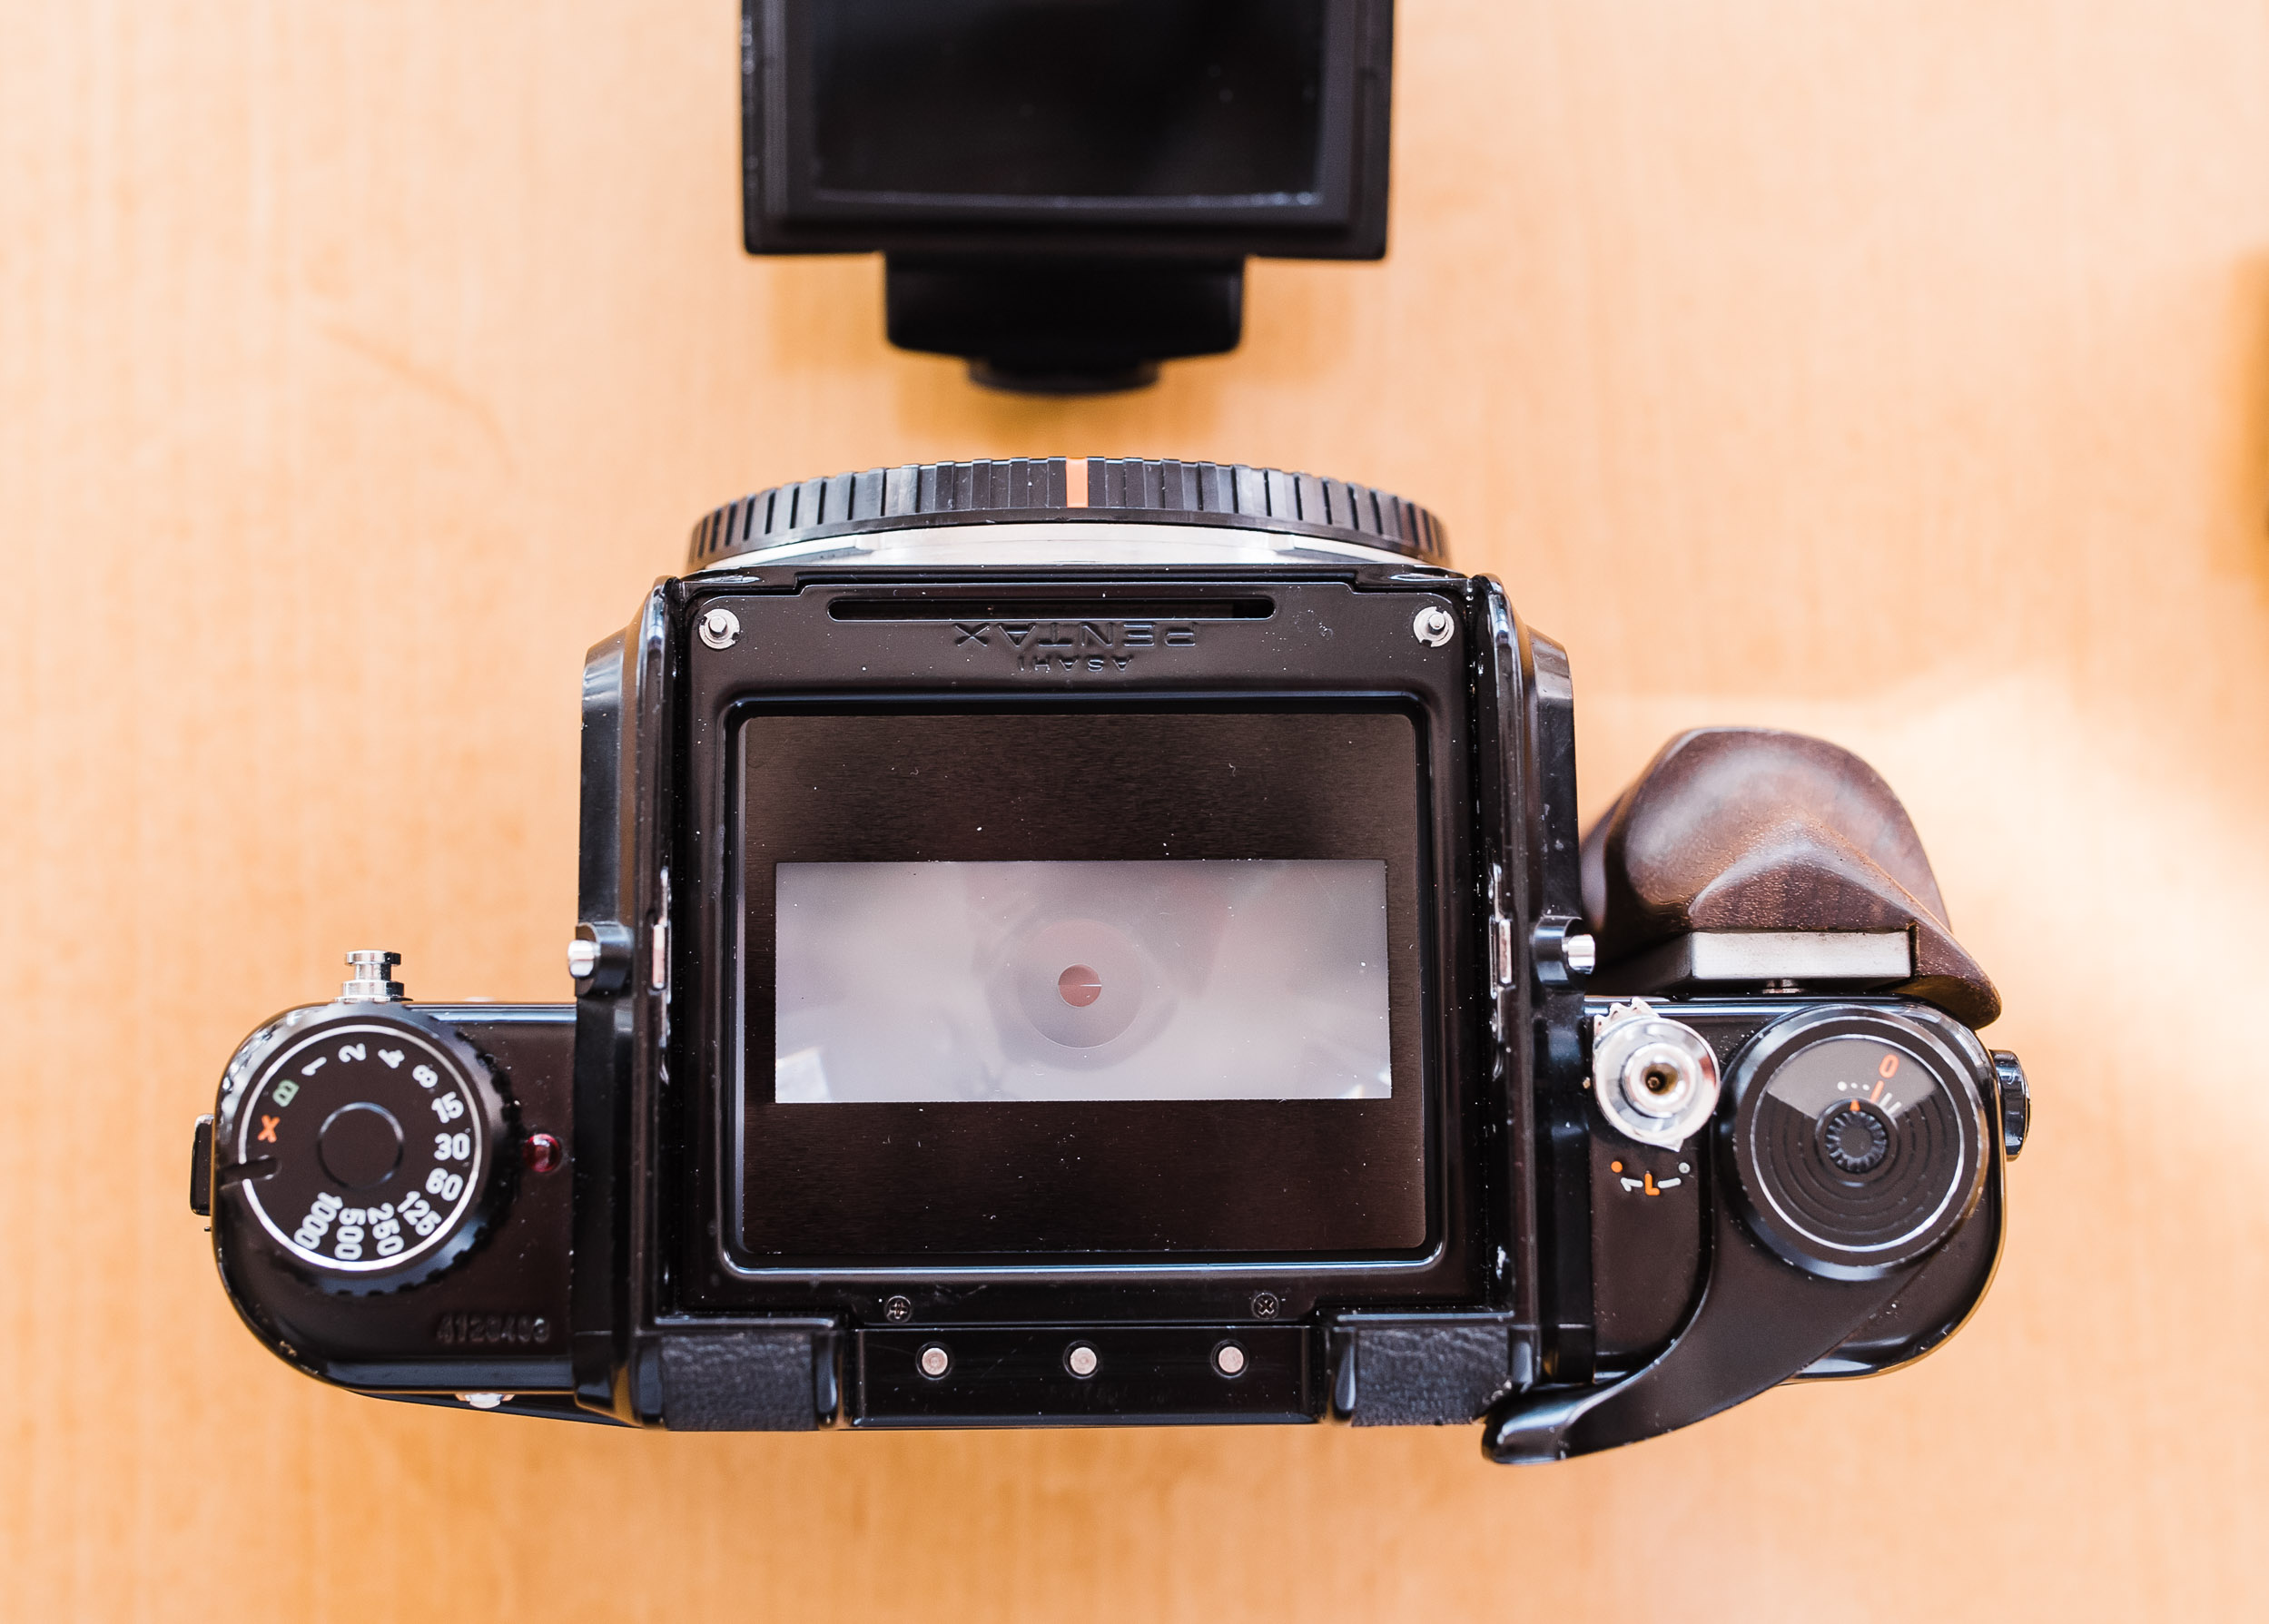 Pentax 67 focus screen with 35mm mask